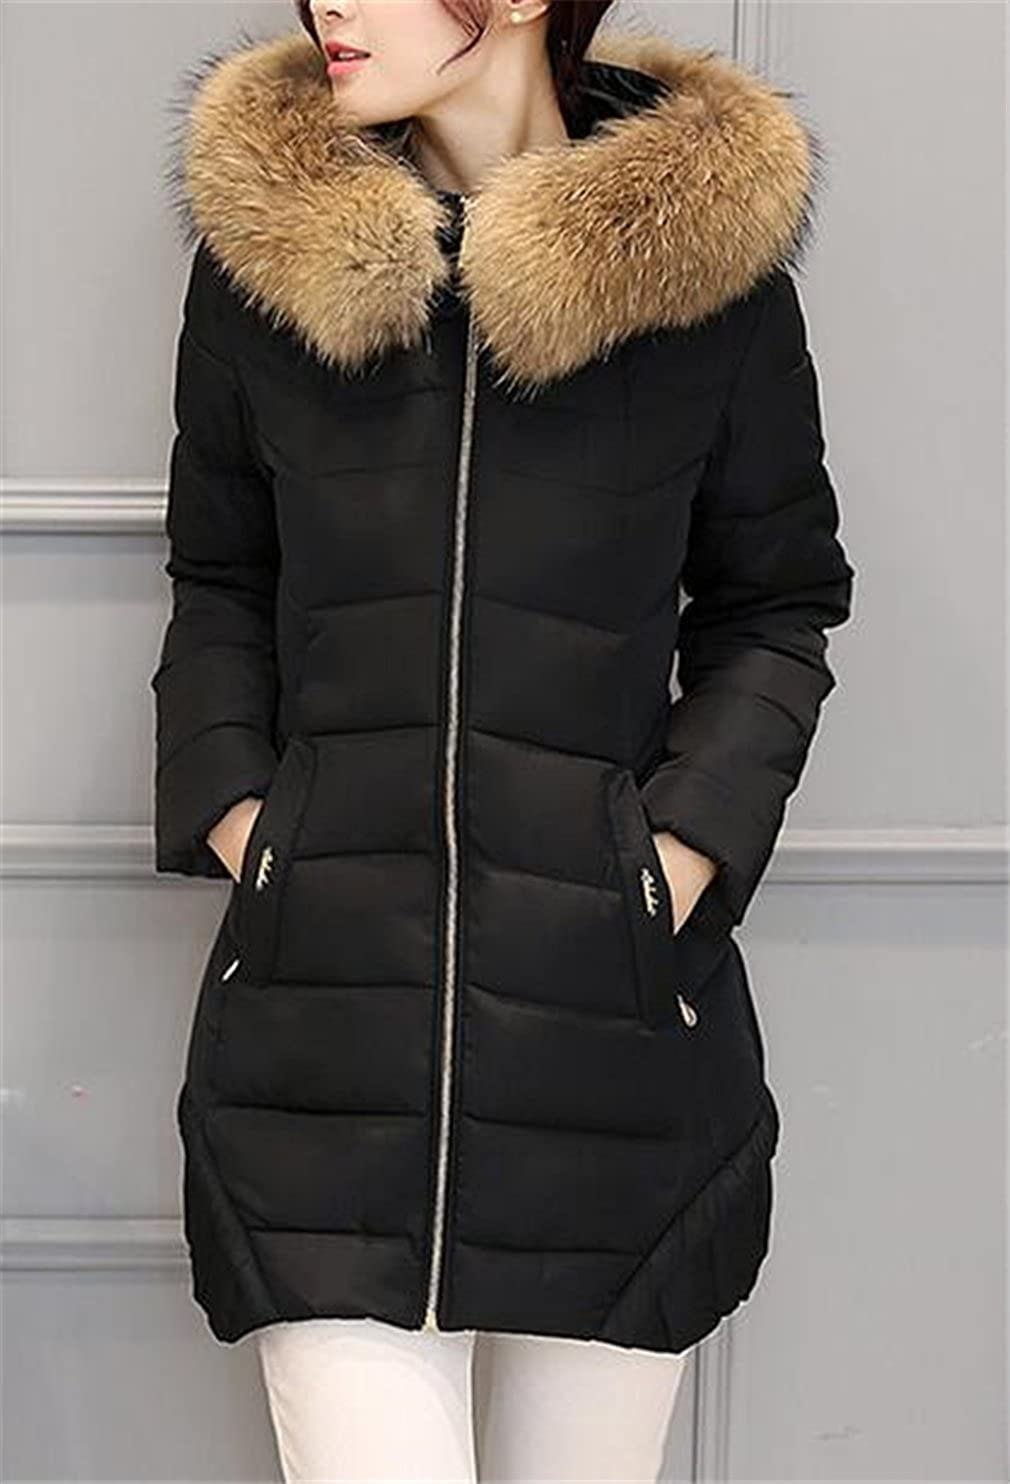 Luodemiss Womens Fashion Solid Outerwear Faux Fur Hoodies Down Coat Jacket